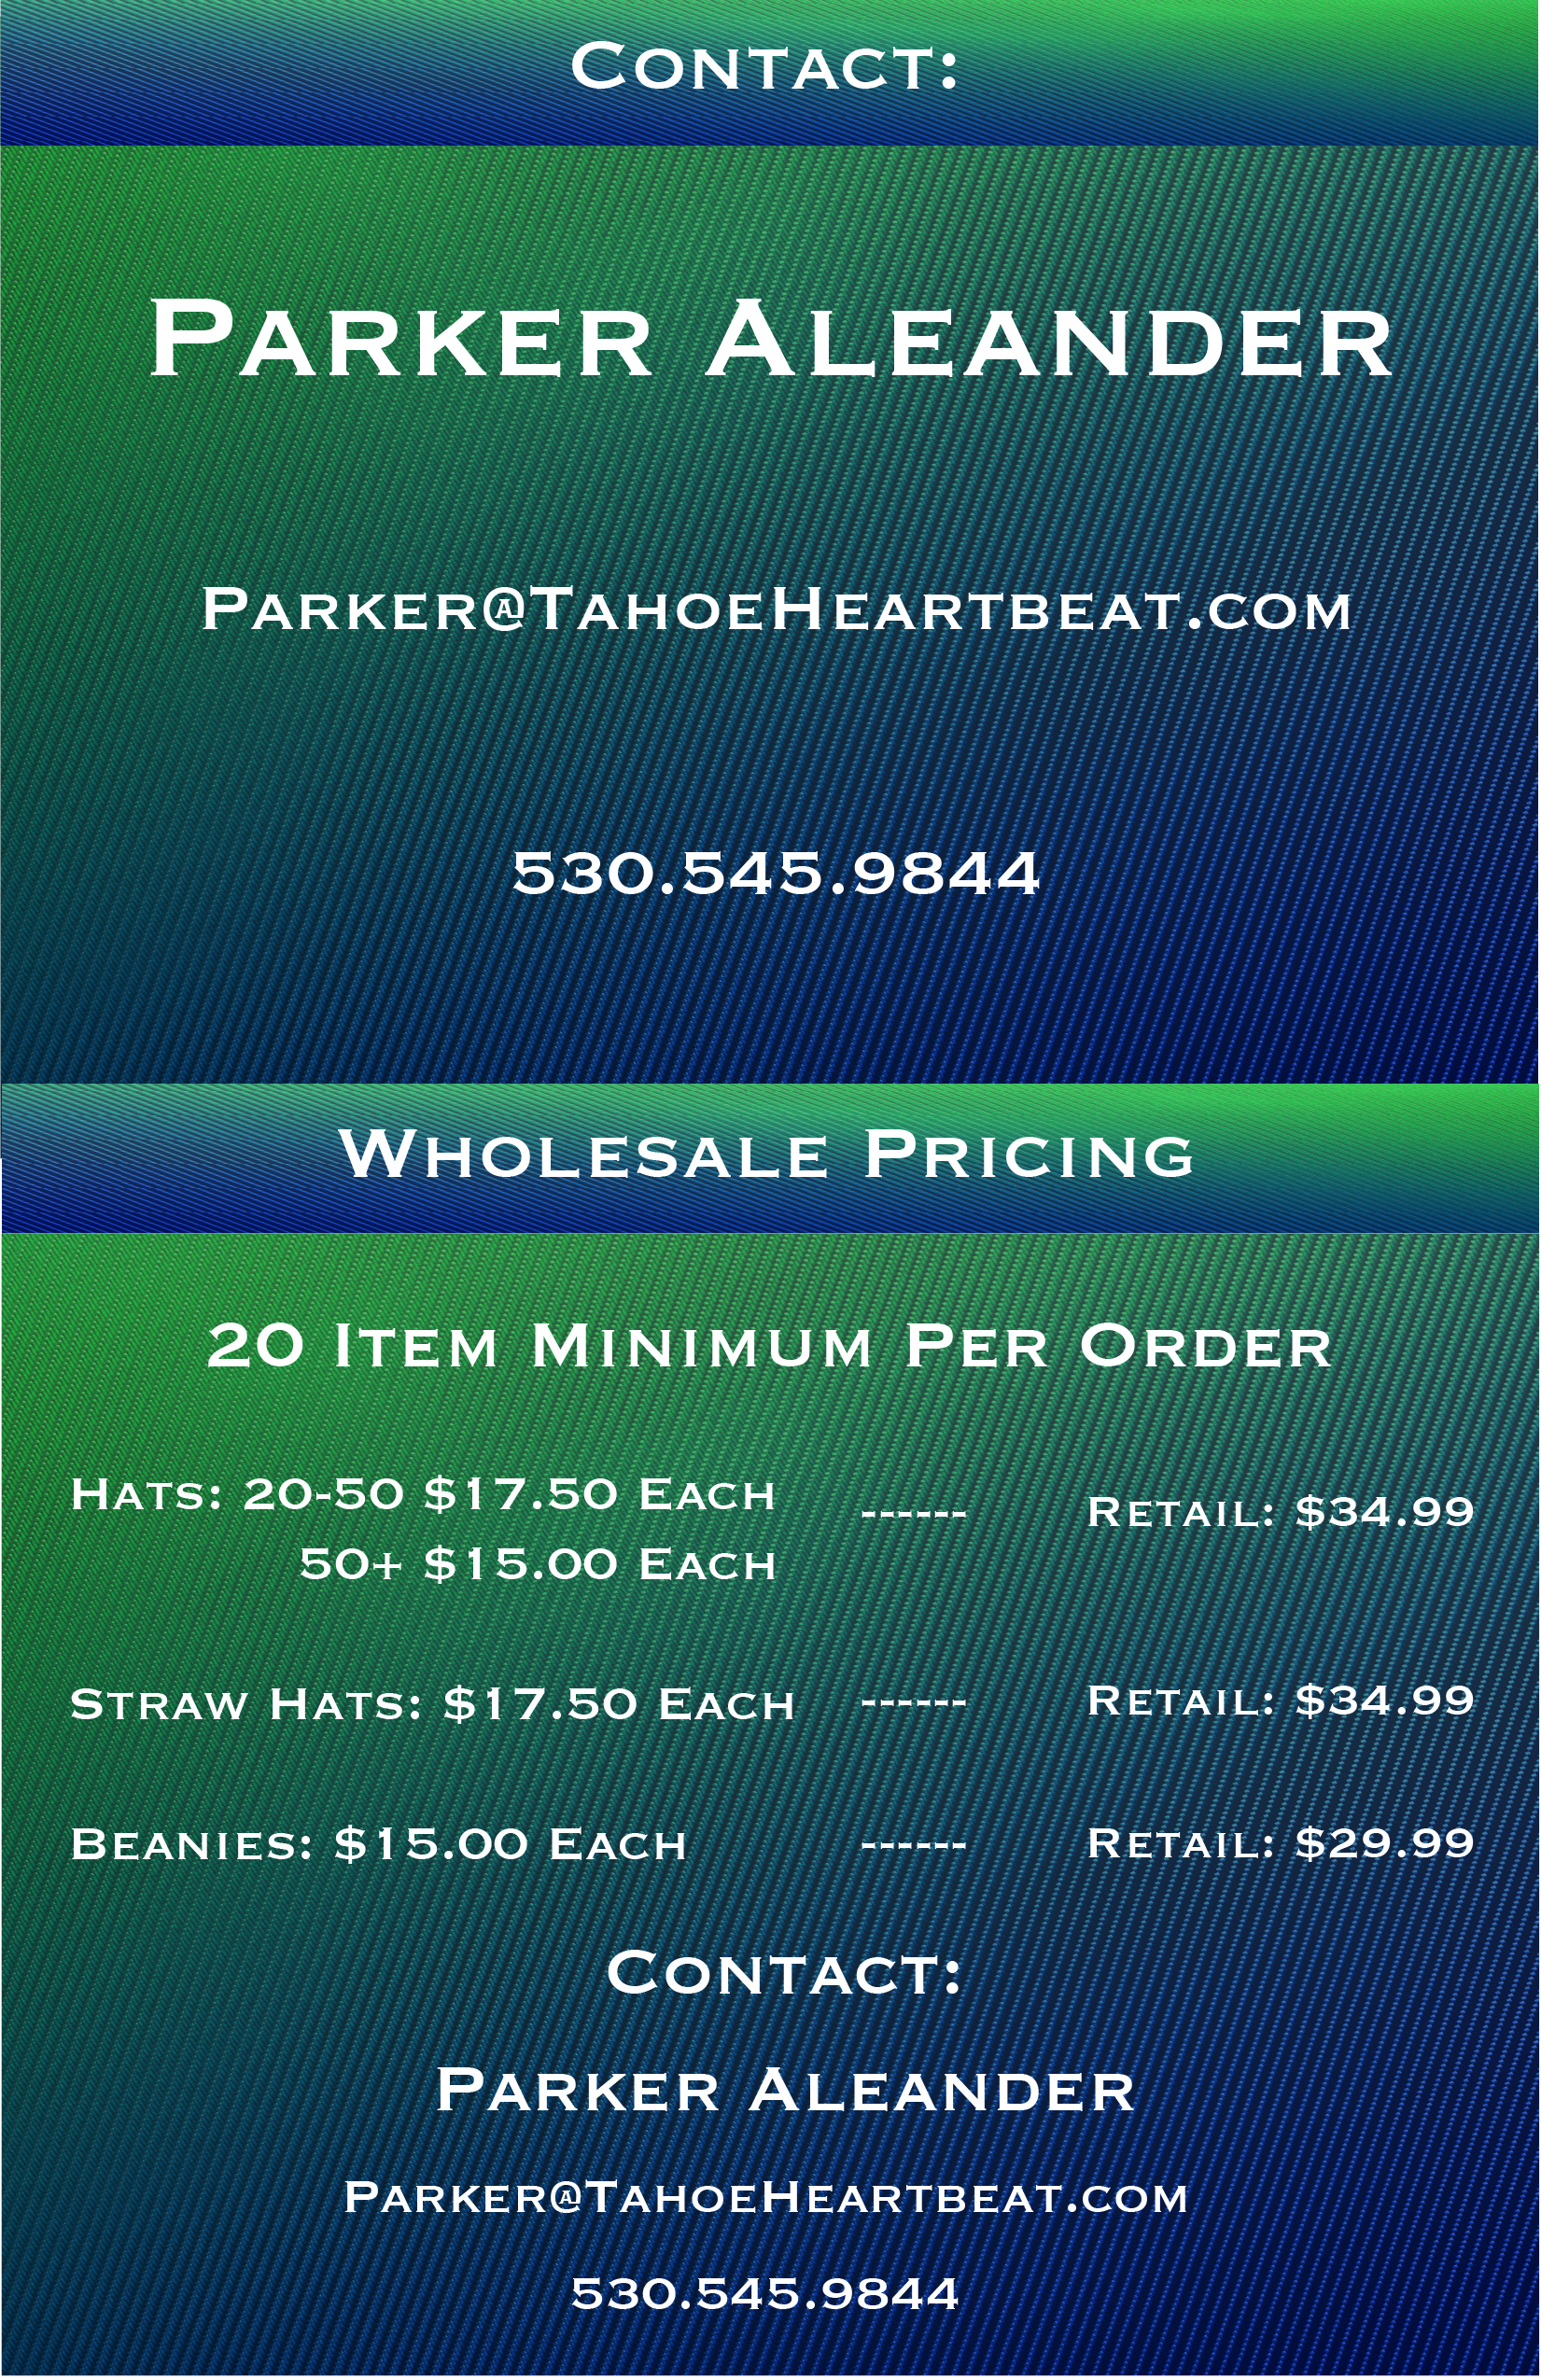 pricing-09.png